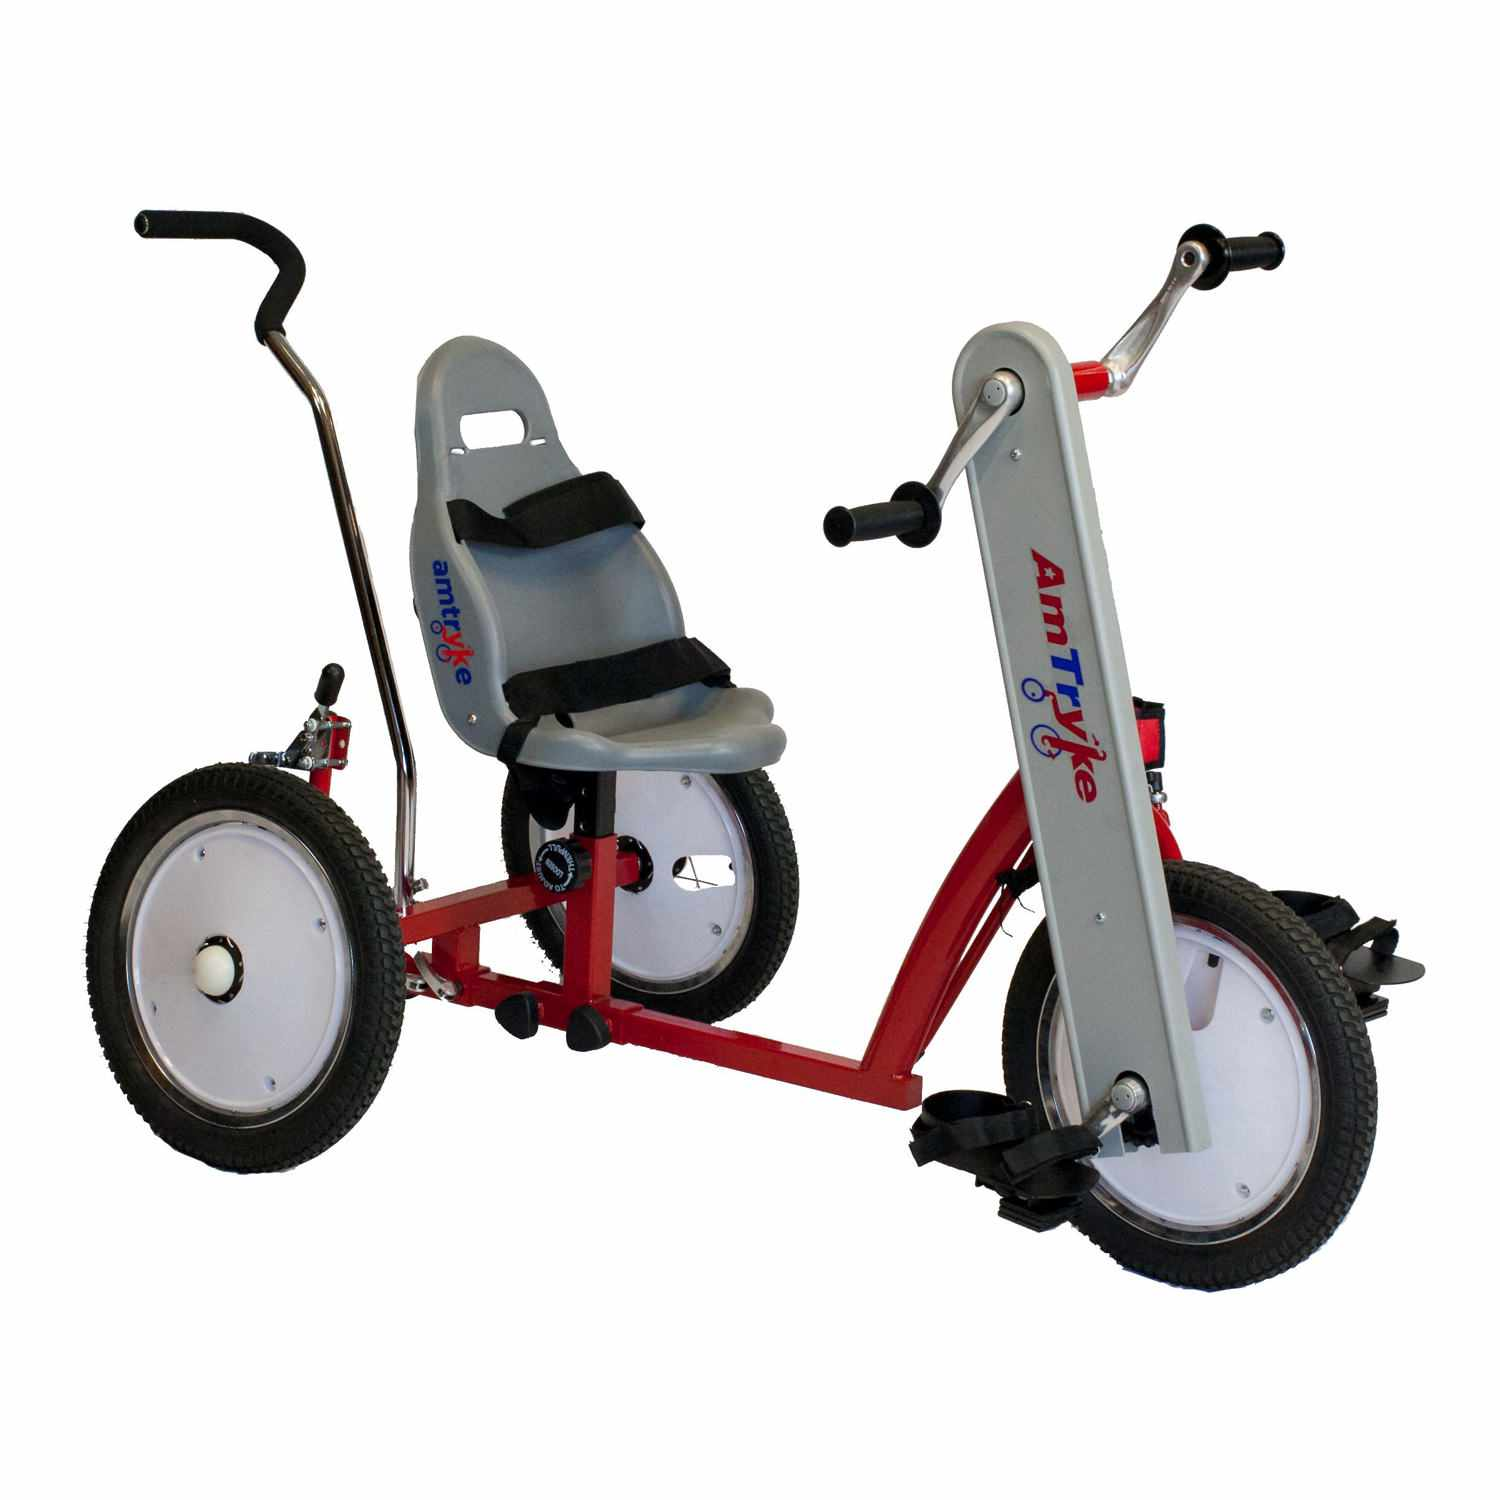 Amtryke AM-12 Tricycle With Bucket Seat | Amtryke Tricycles (50-Hfc-0210-Bu)